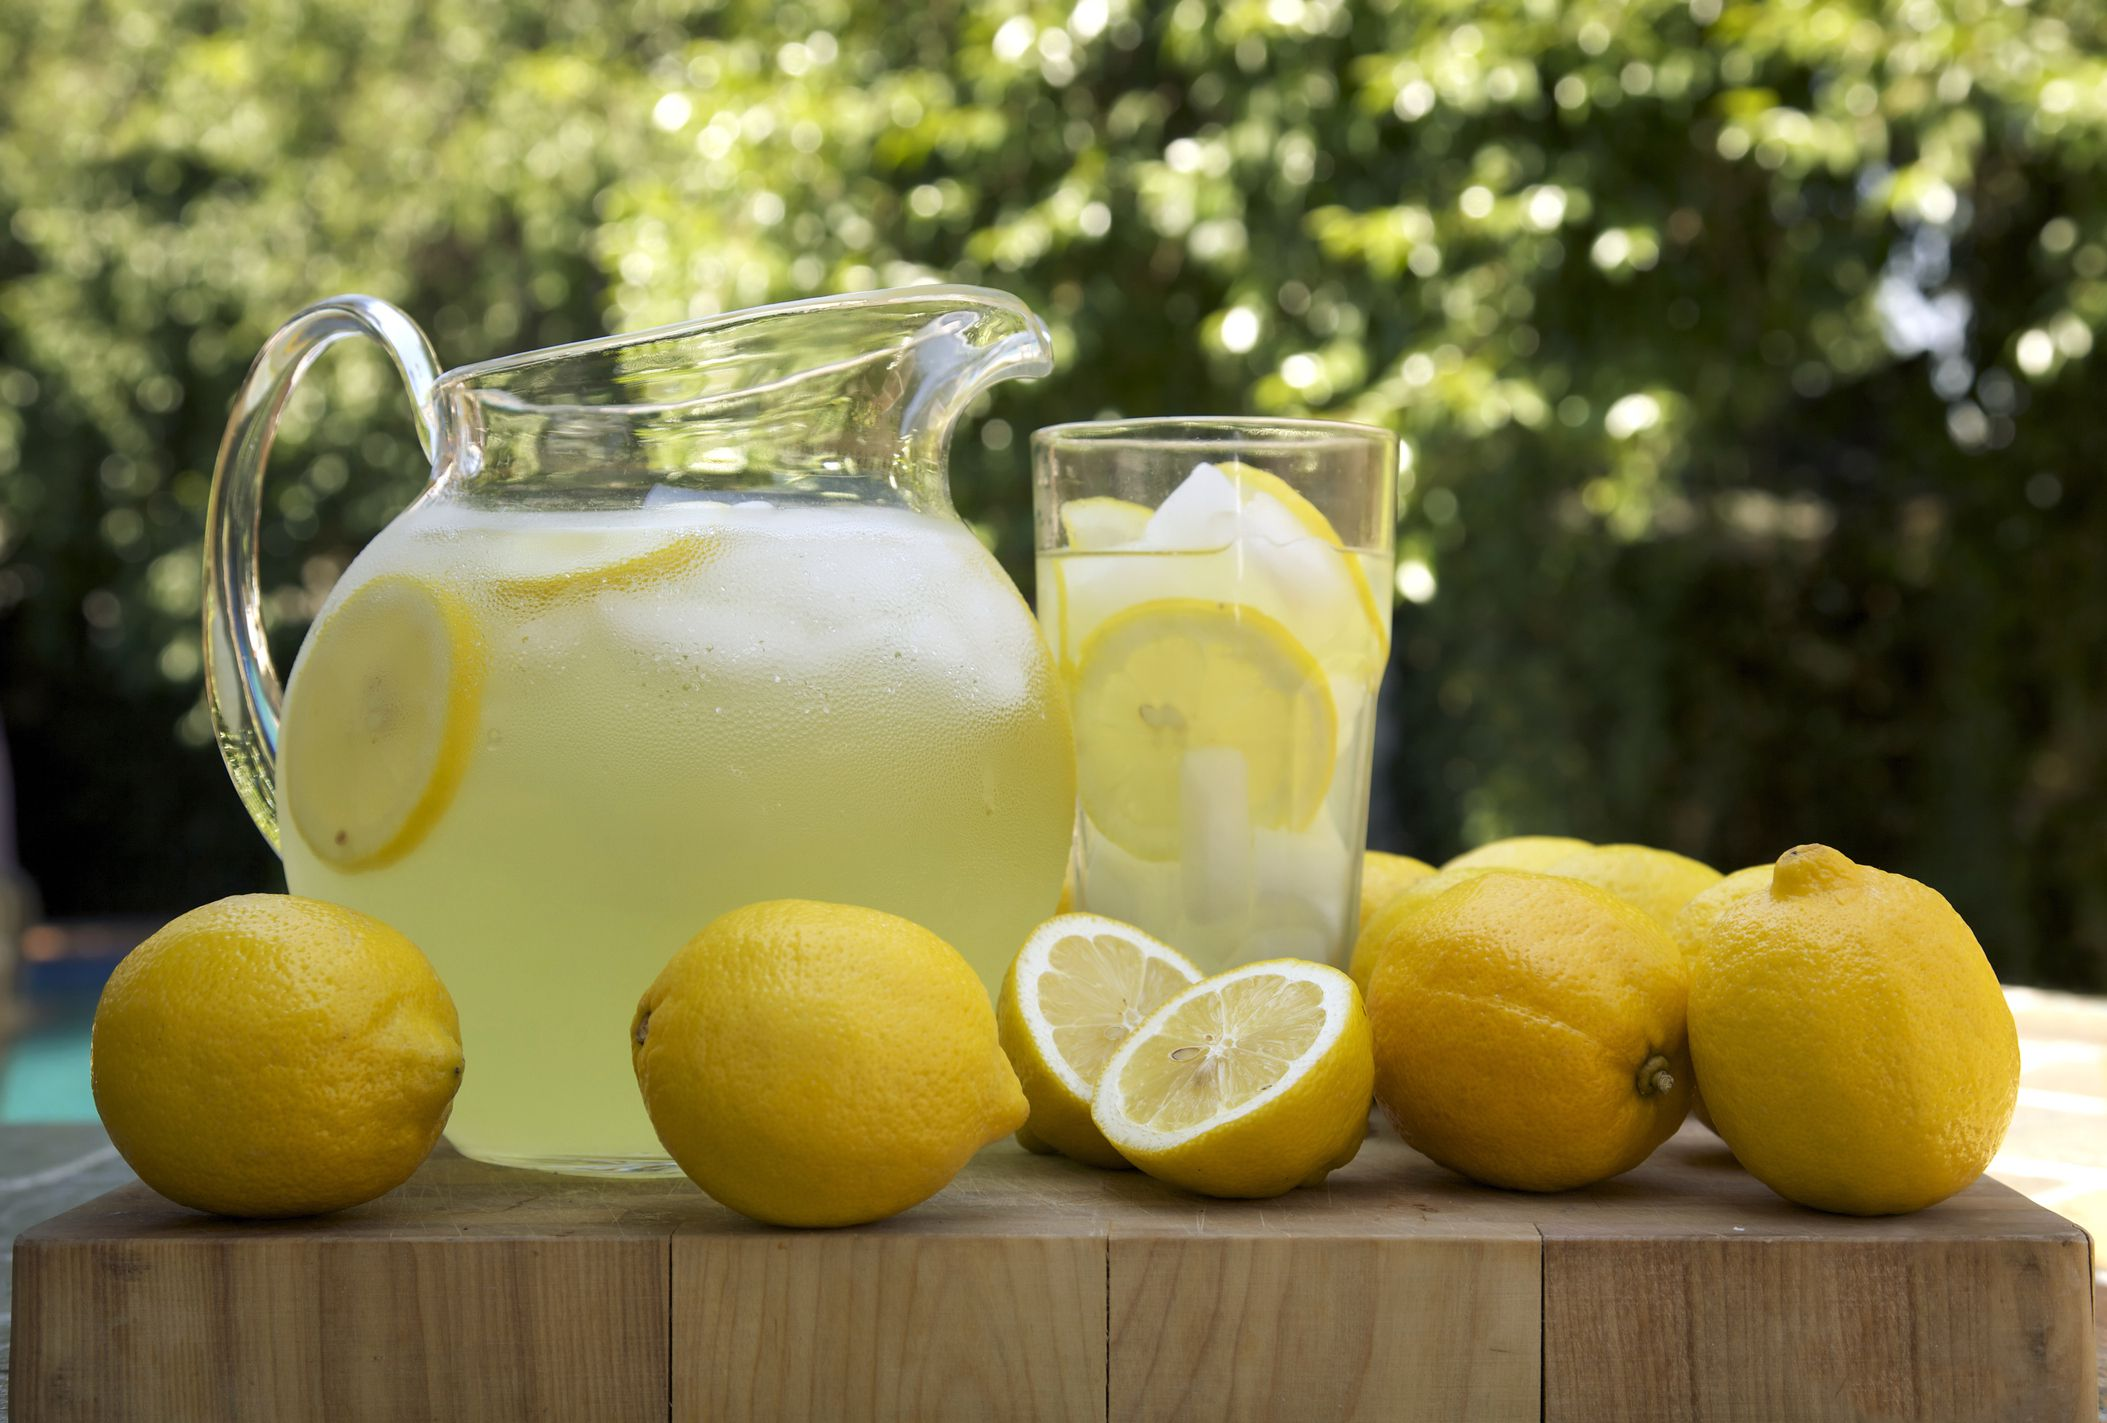 Homemade Lemonade Recipe with Variations